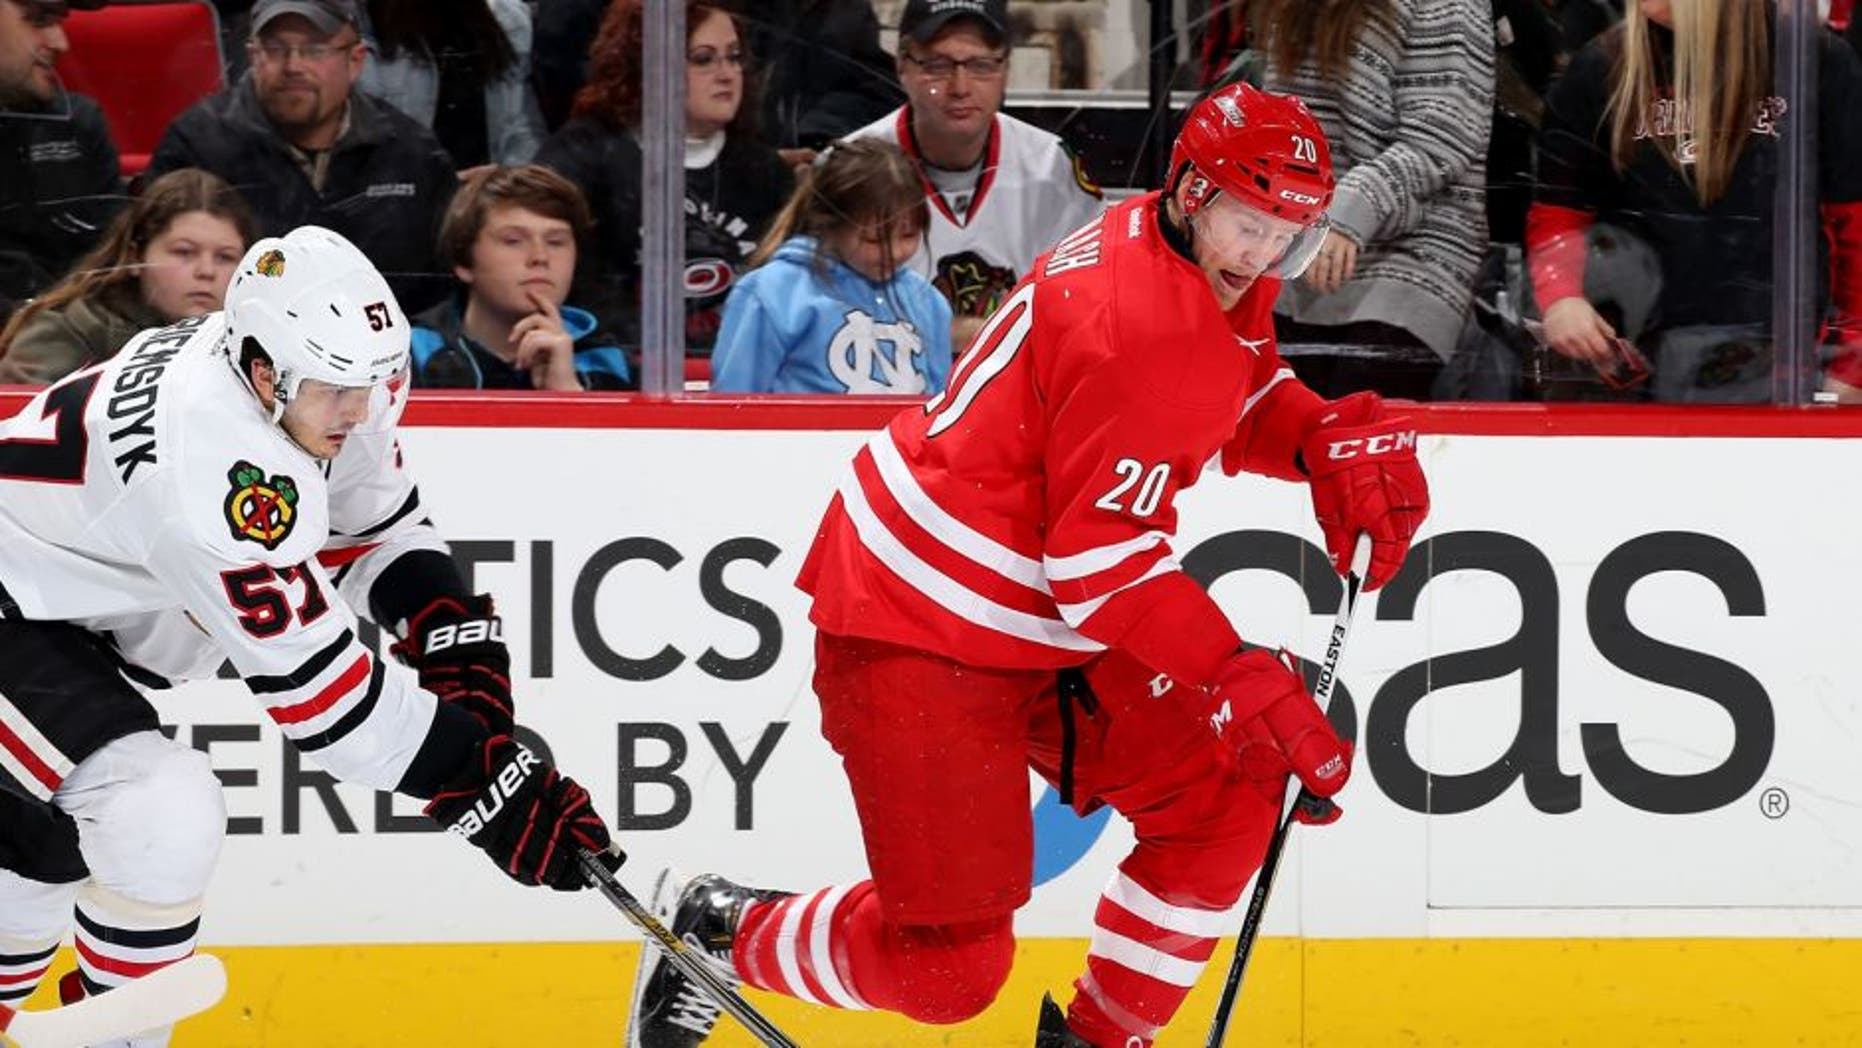 RALEIGH, NC - JANUARY 26: Riley Nash #20 of the Carolina Hurricanes gets out on a breakaway as Trevor van Riemsdyk #57 of the Chicago Blackhawks steals the puck during an NHL game at PNC Arena on January 26, 2016 in Raleigh, North Carolina. (Photo by Gregg Forwerck/NHLI via Getty Images)